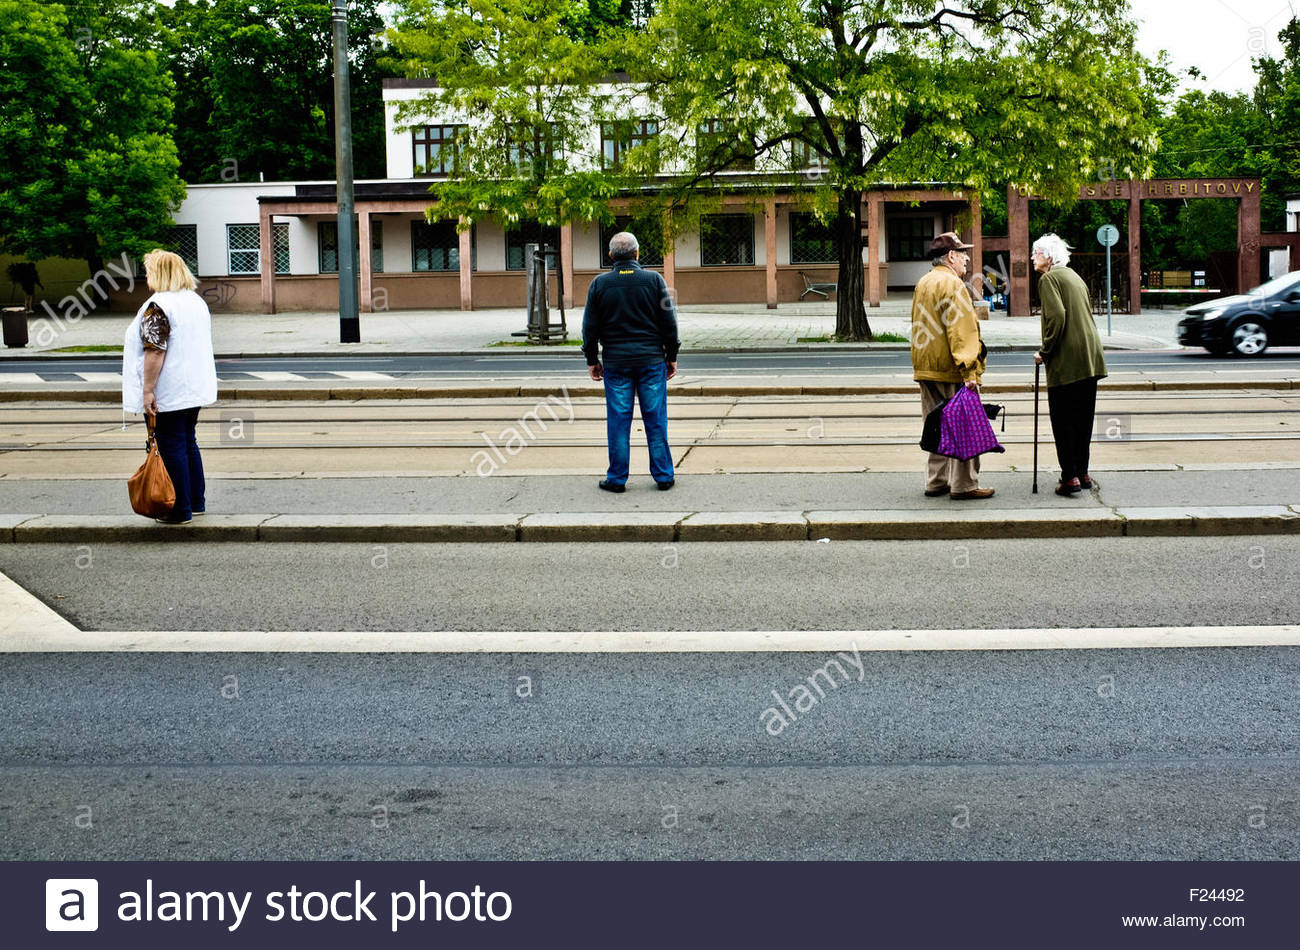 people waiting the city tramway - Stock Image